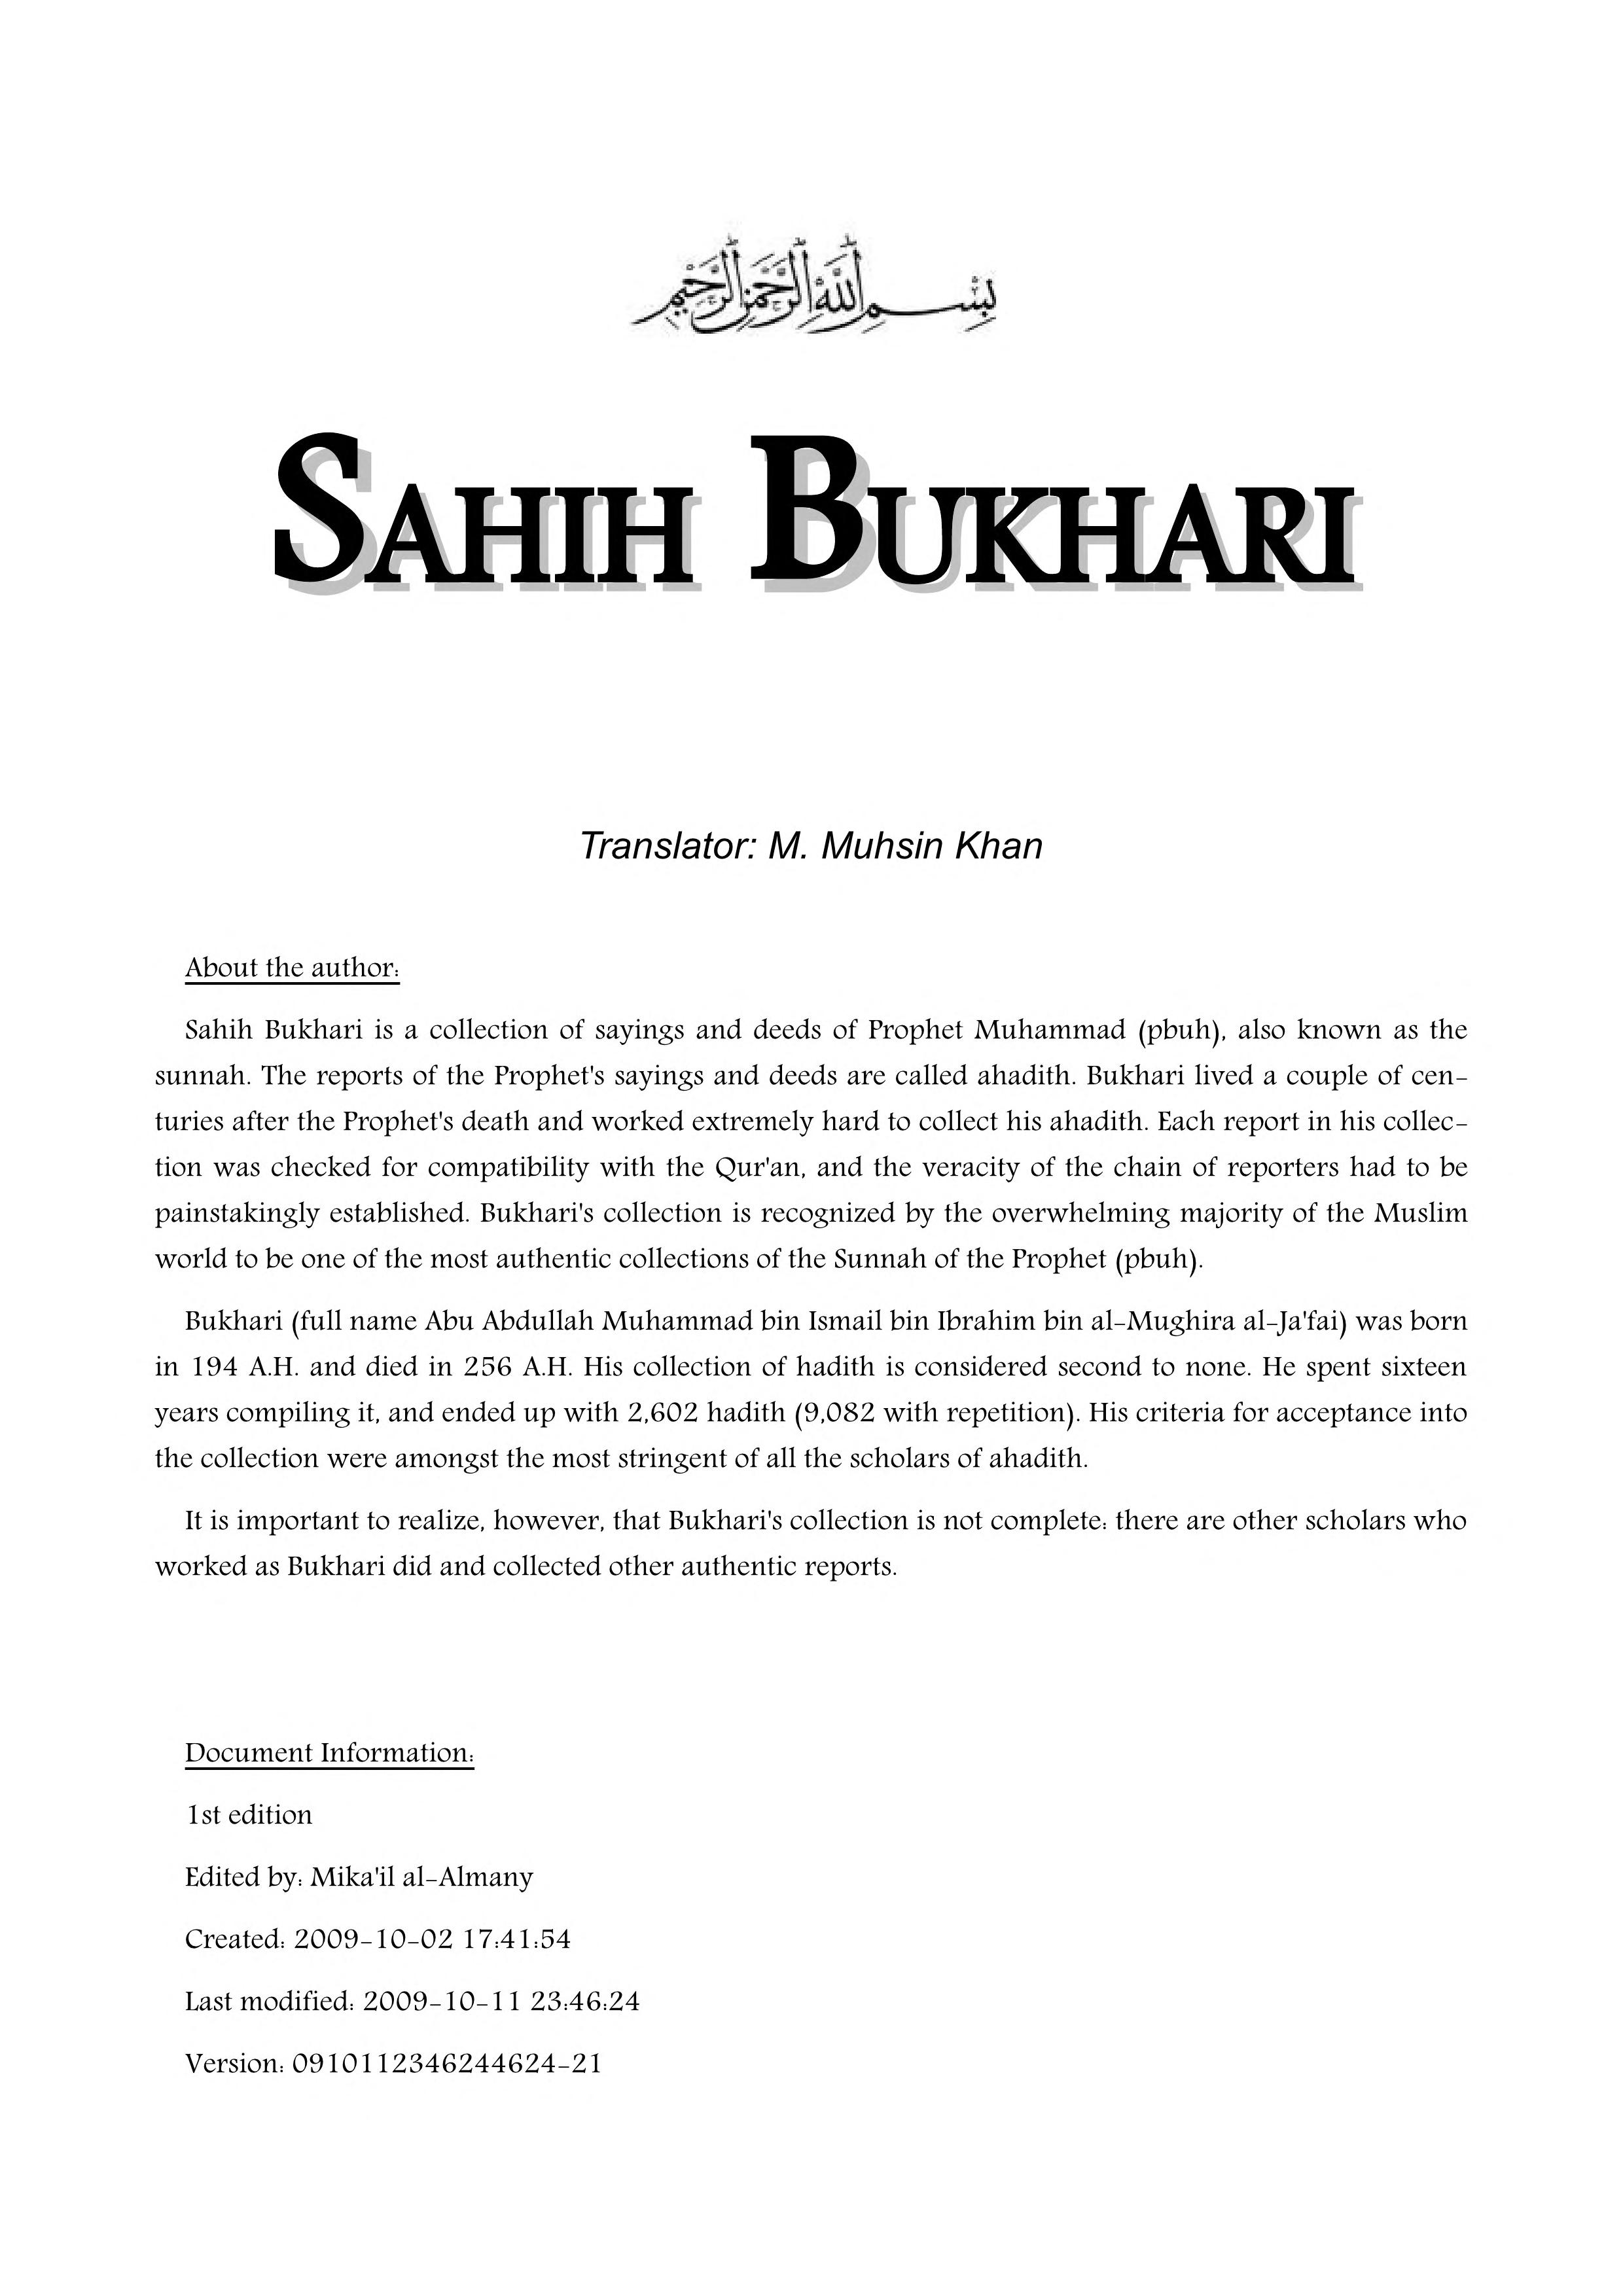 Sahih Bukhari English Pdf